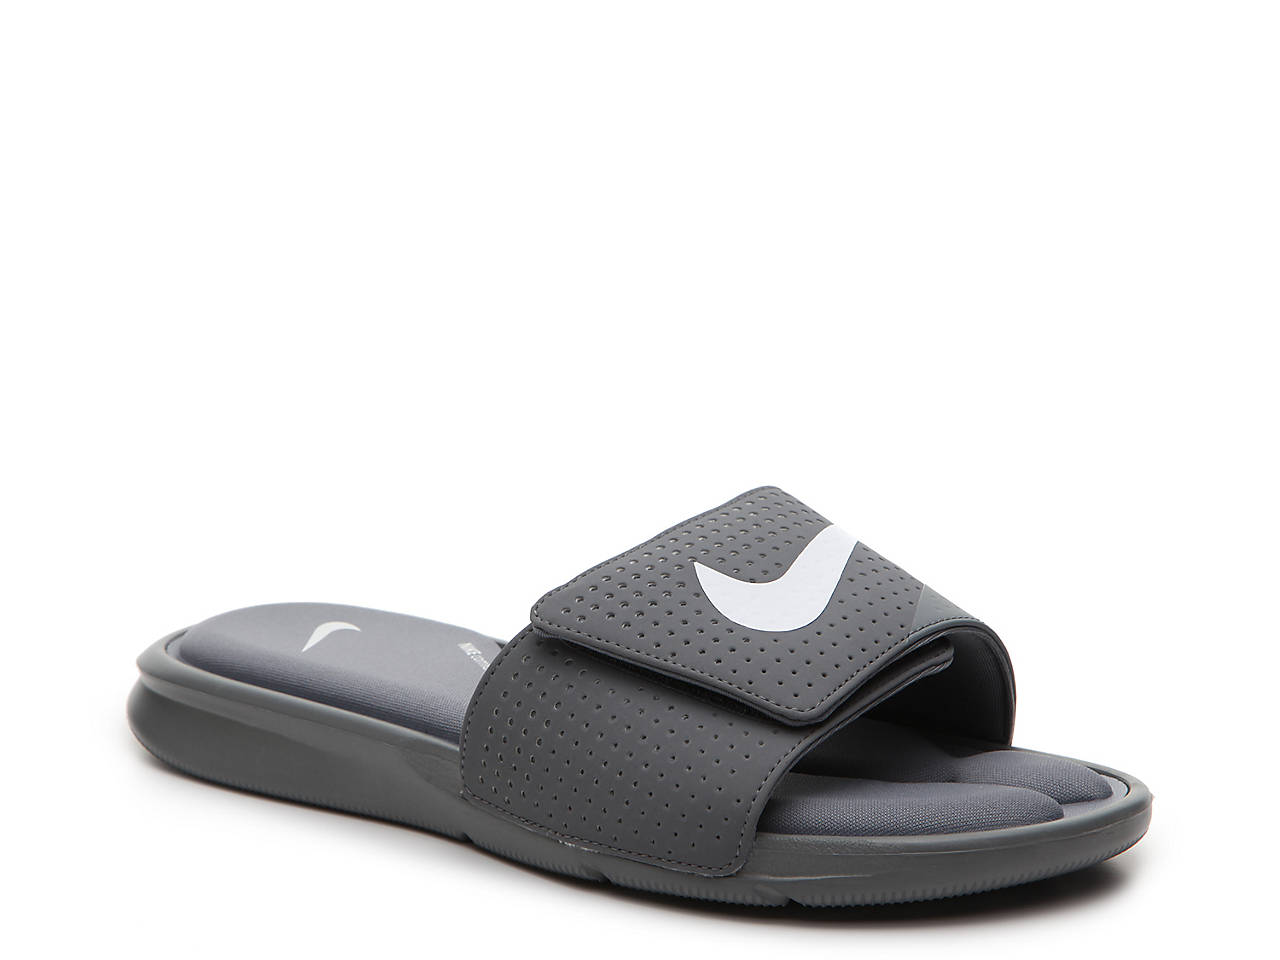 13d20d12e9956 Nike Ultra Comfort Slide Sandal - Men s Men s Shoes